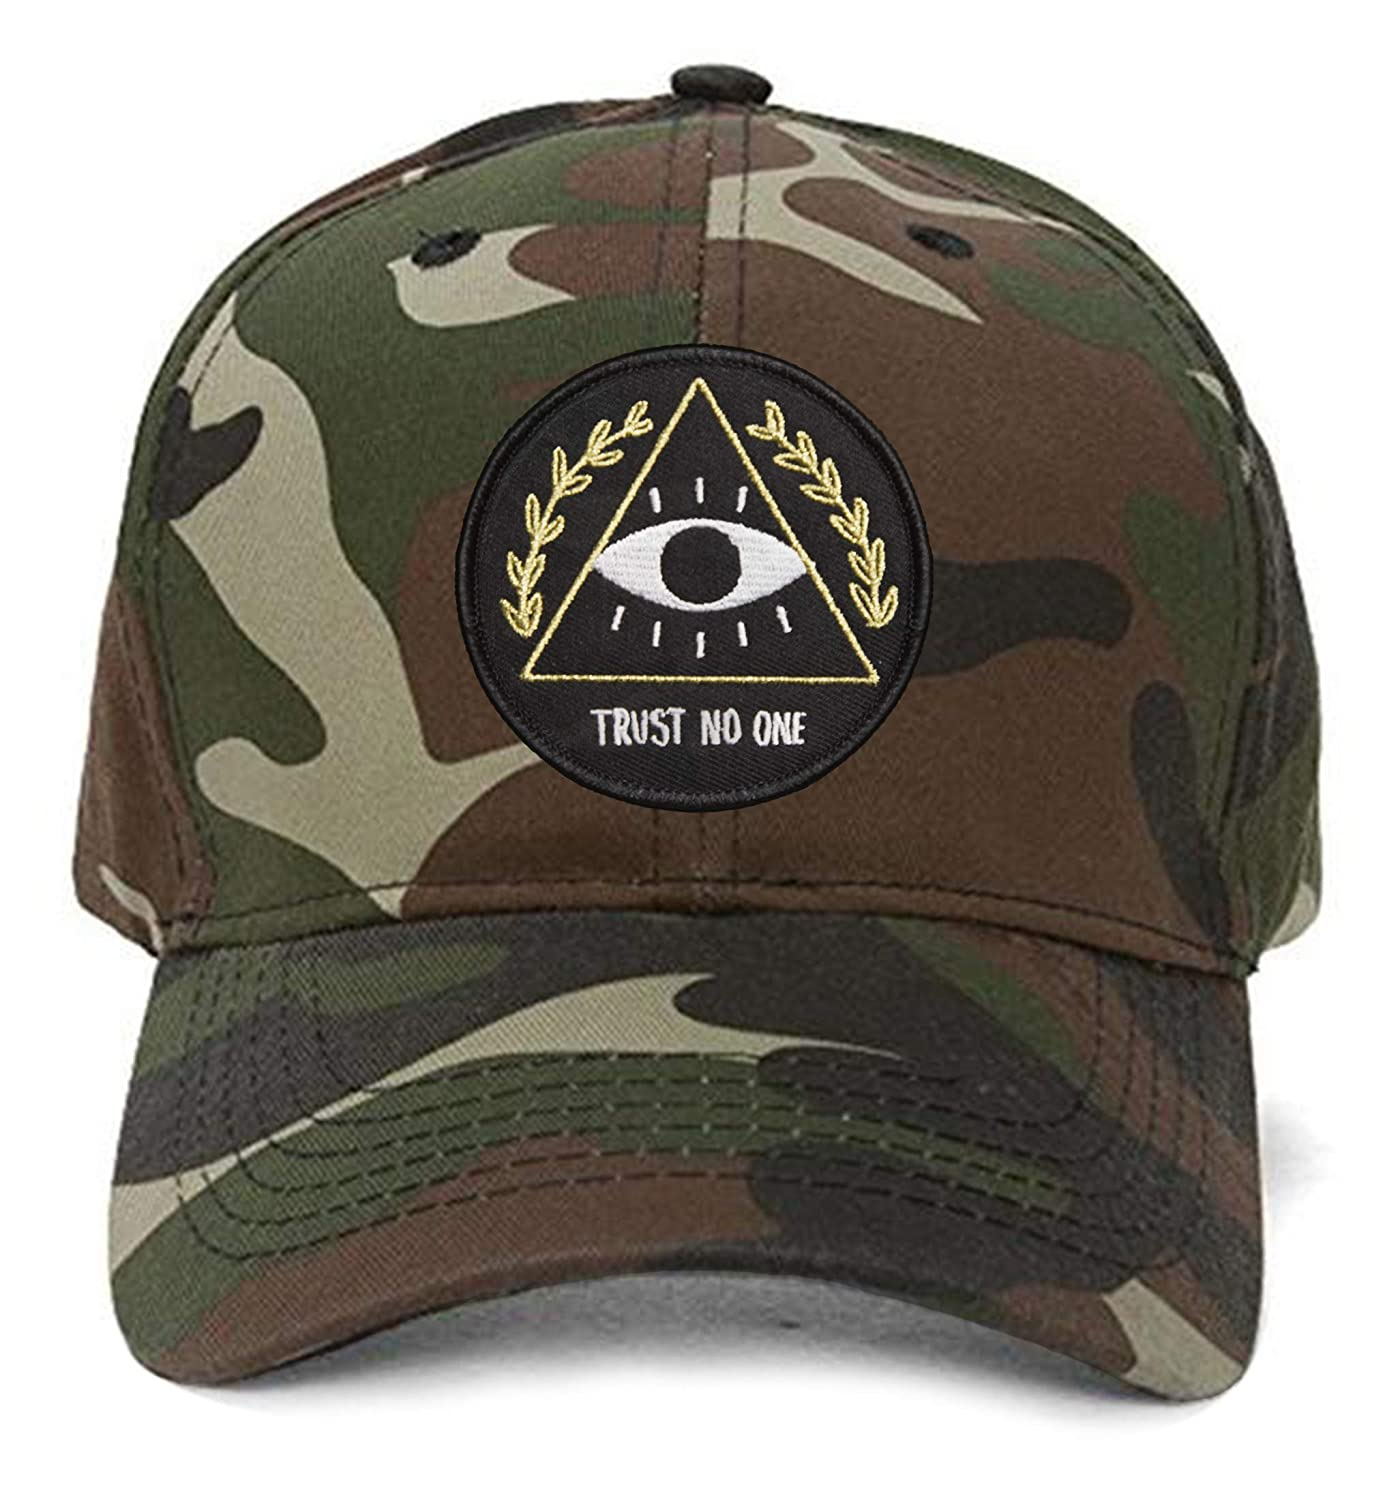 495fbcb41d25e Trust No One Hat - Men s Adjustable Cap All-Seeing Eye Pyramid (Black) at  Amazon Men s Clothing store